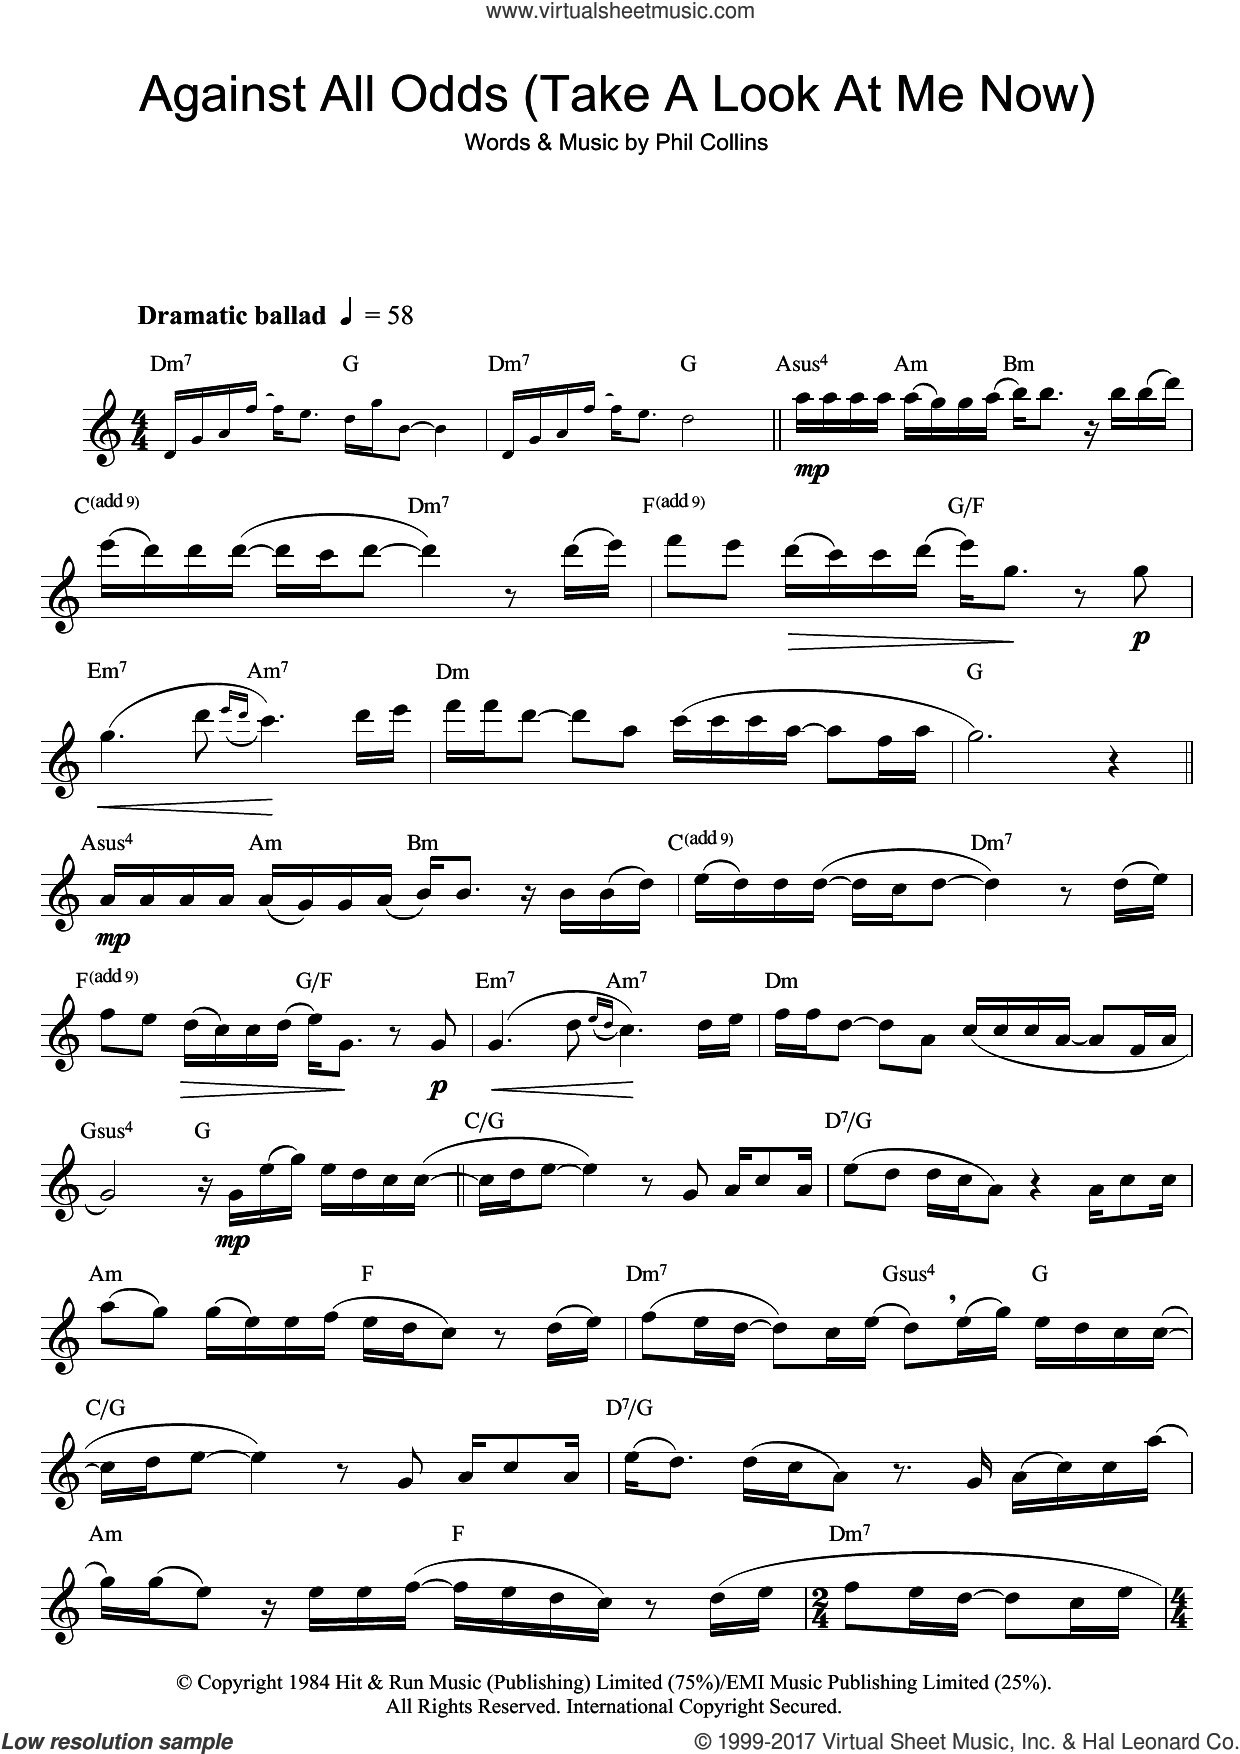 Against All Odds (Take A Look At Me Now) sheet music for flute solo by Phil Collins, intermediate skill level